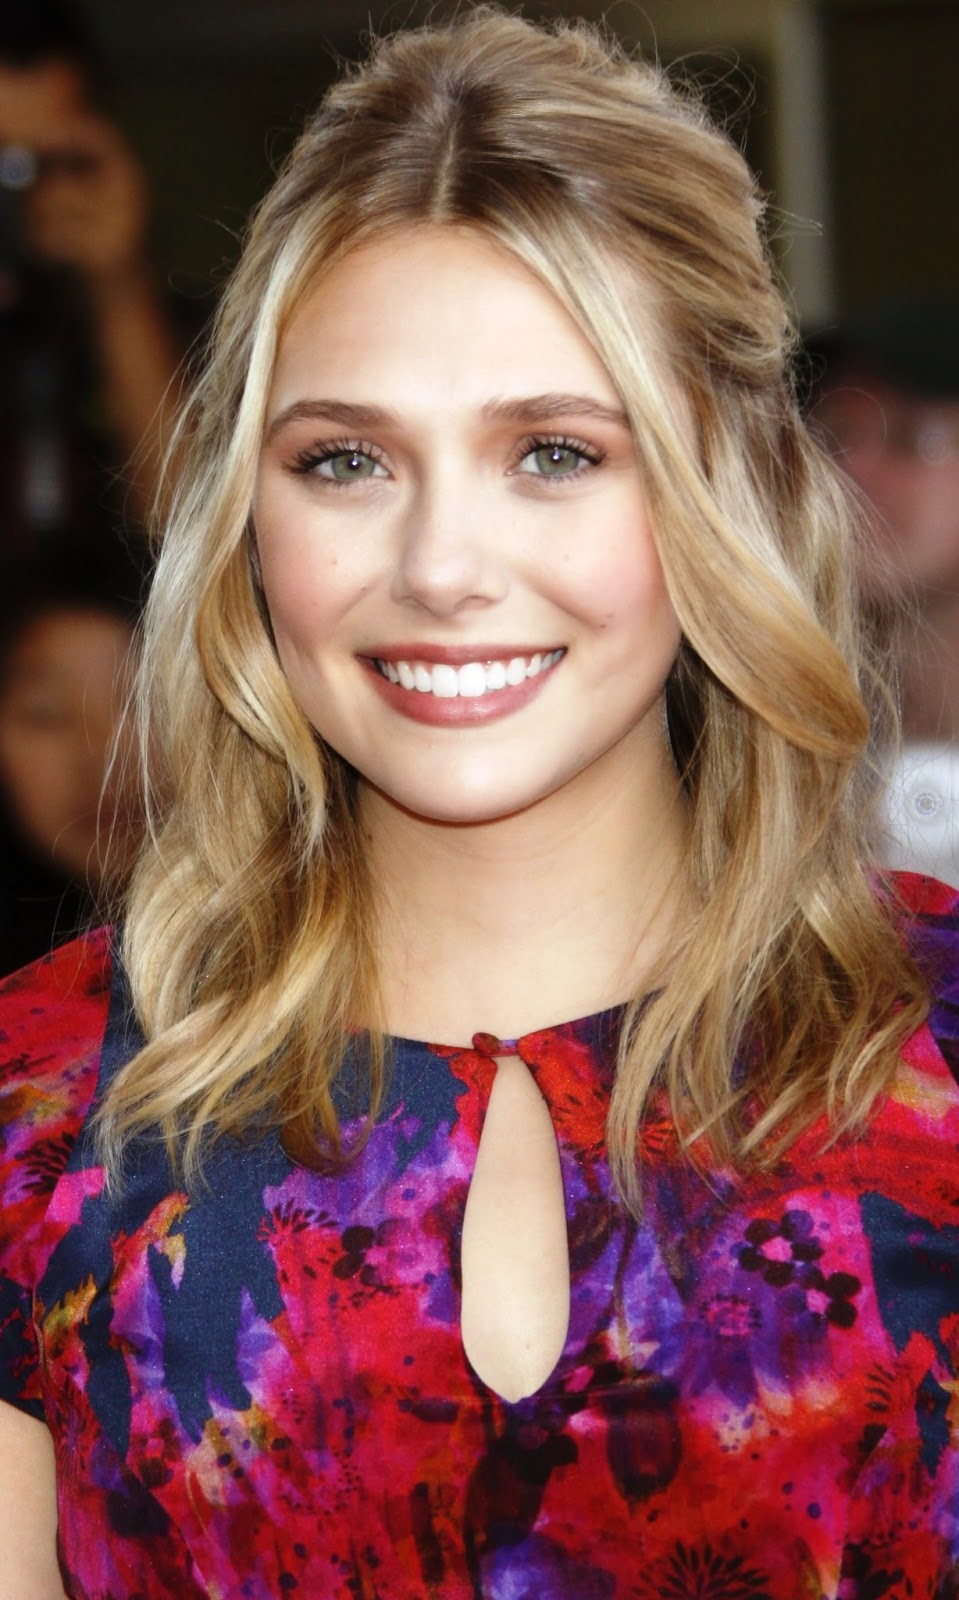 legs Elizabeth Olsen born February 16, 1989 (age 29) naked photo 2017